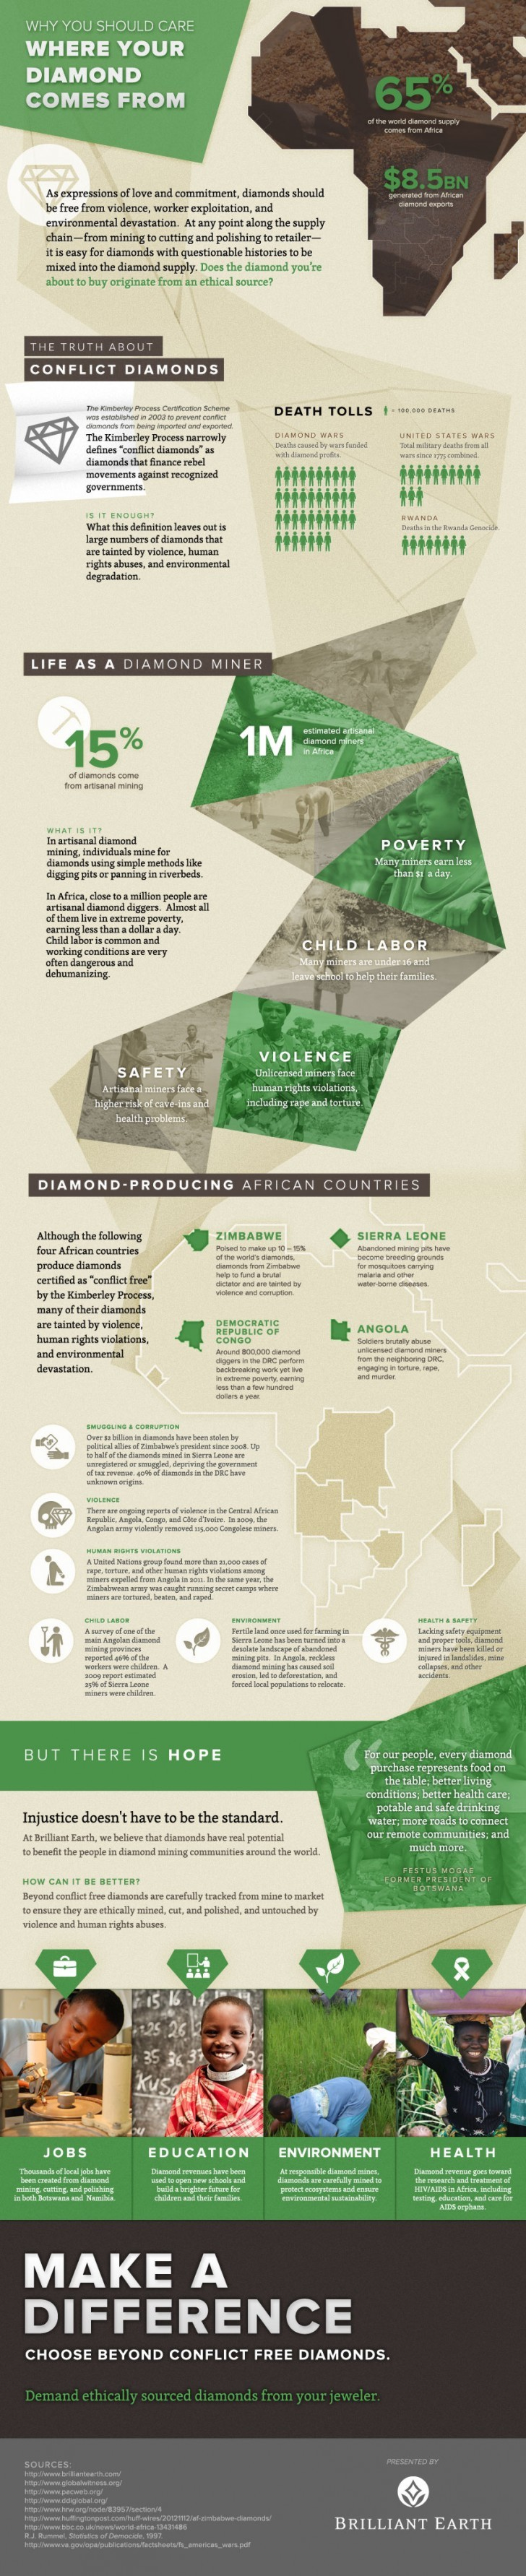 diamonds, green diamonds, blood diamonds, ethical diamonds, unethical diamonds, ethical mining, diamond mining, diamond bloodshed, diamond mining damage environment